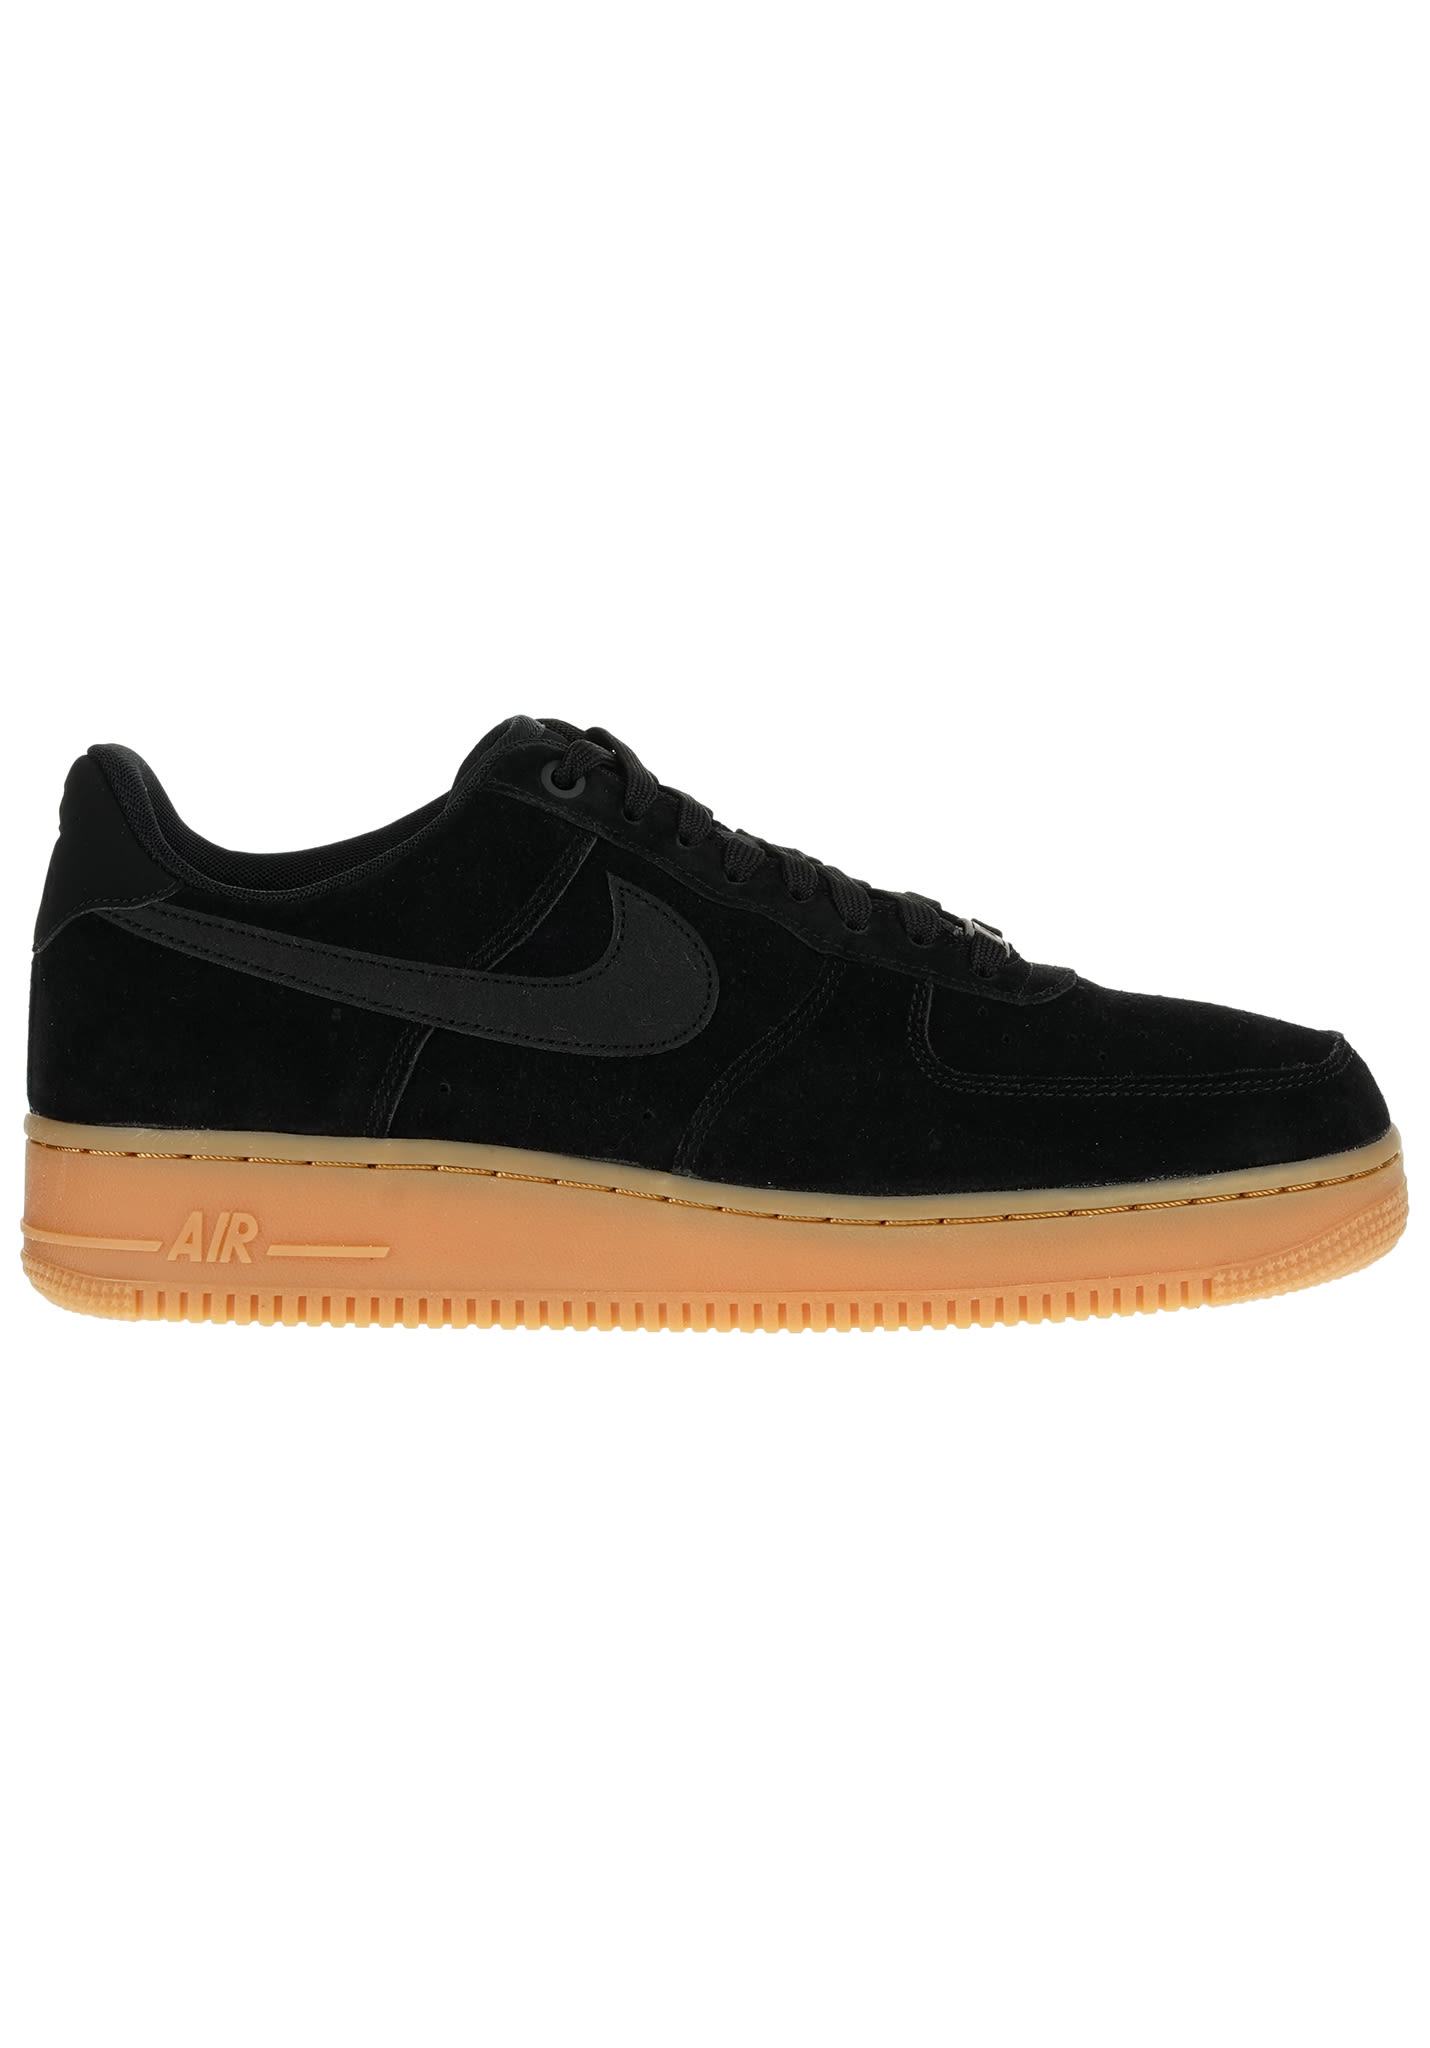 check out 5cd80 43404 NIKE SPORTSWEAR Air Force 1 07 Lv8 Suede - Sneakers voor Heren - Zwart -  Planet Sports